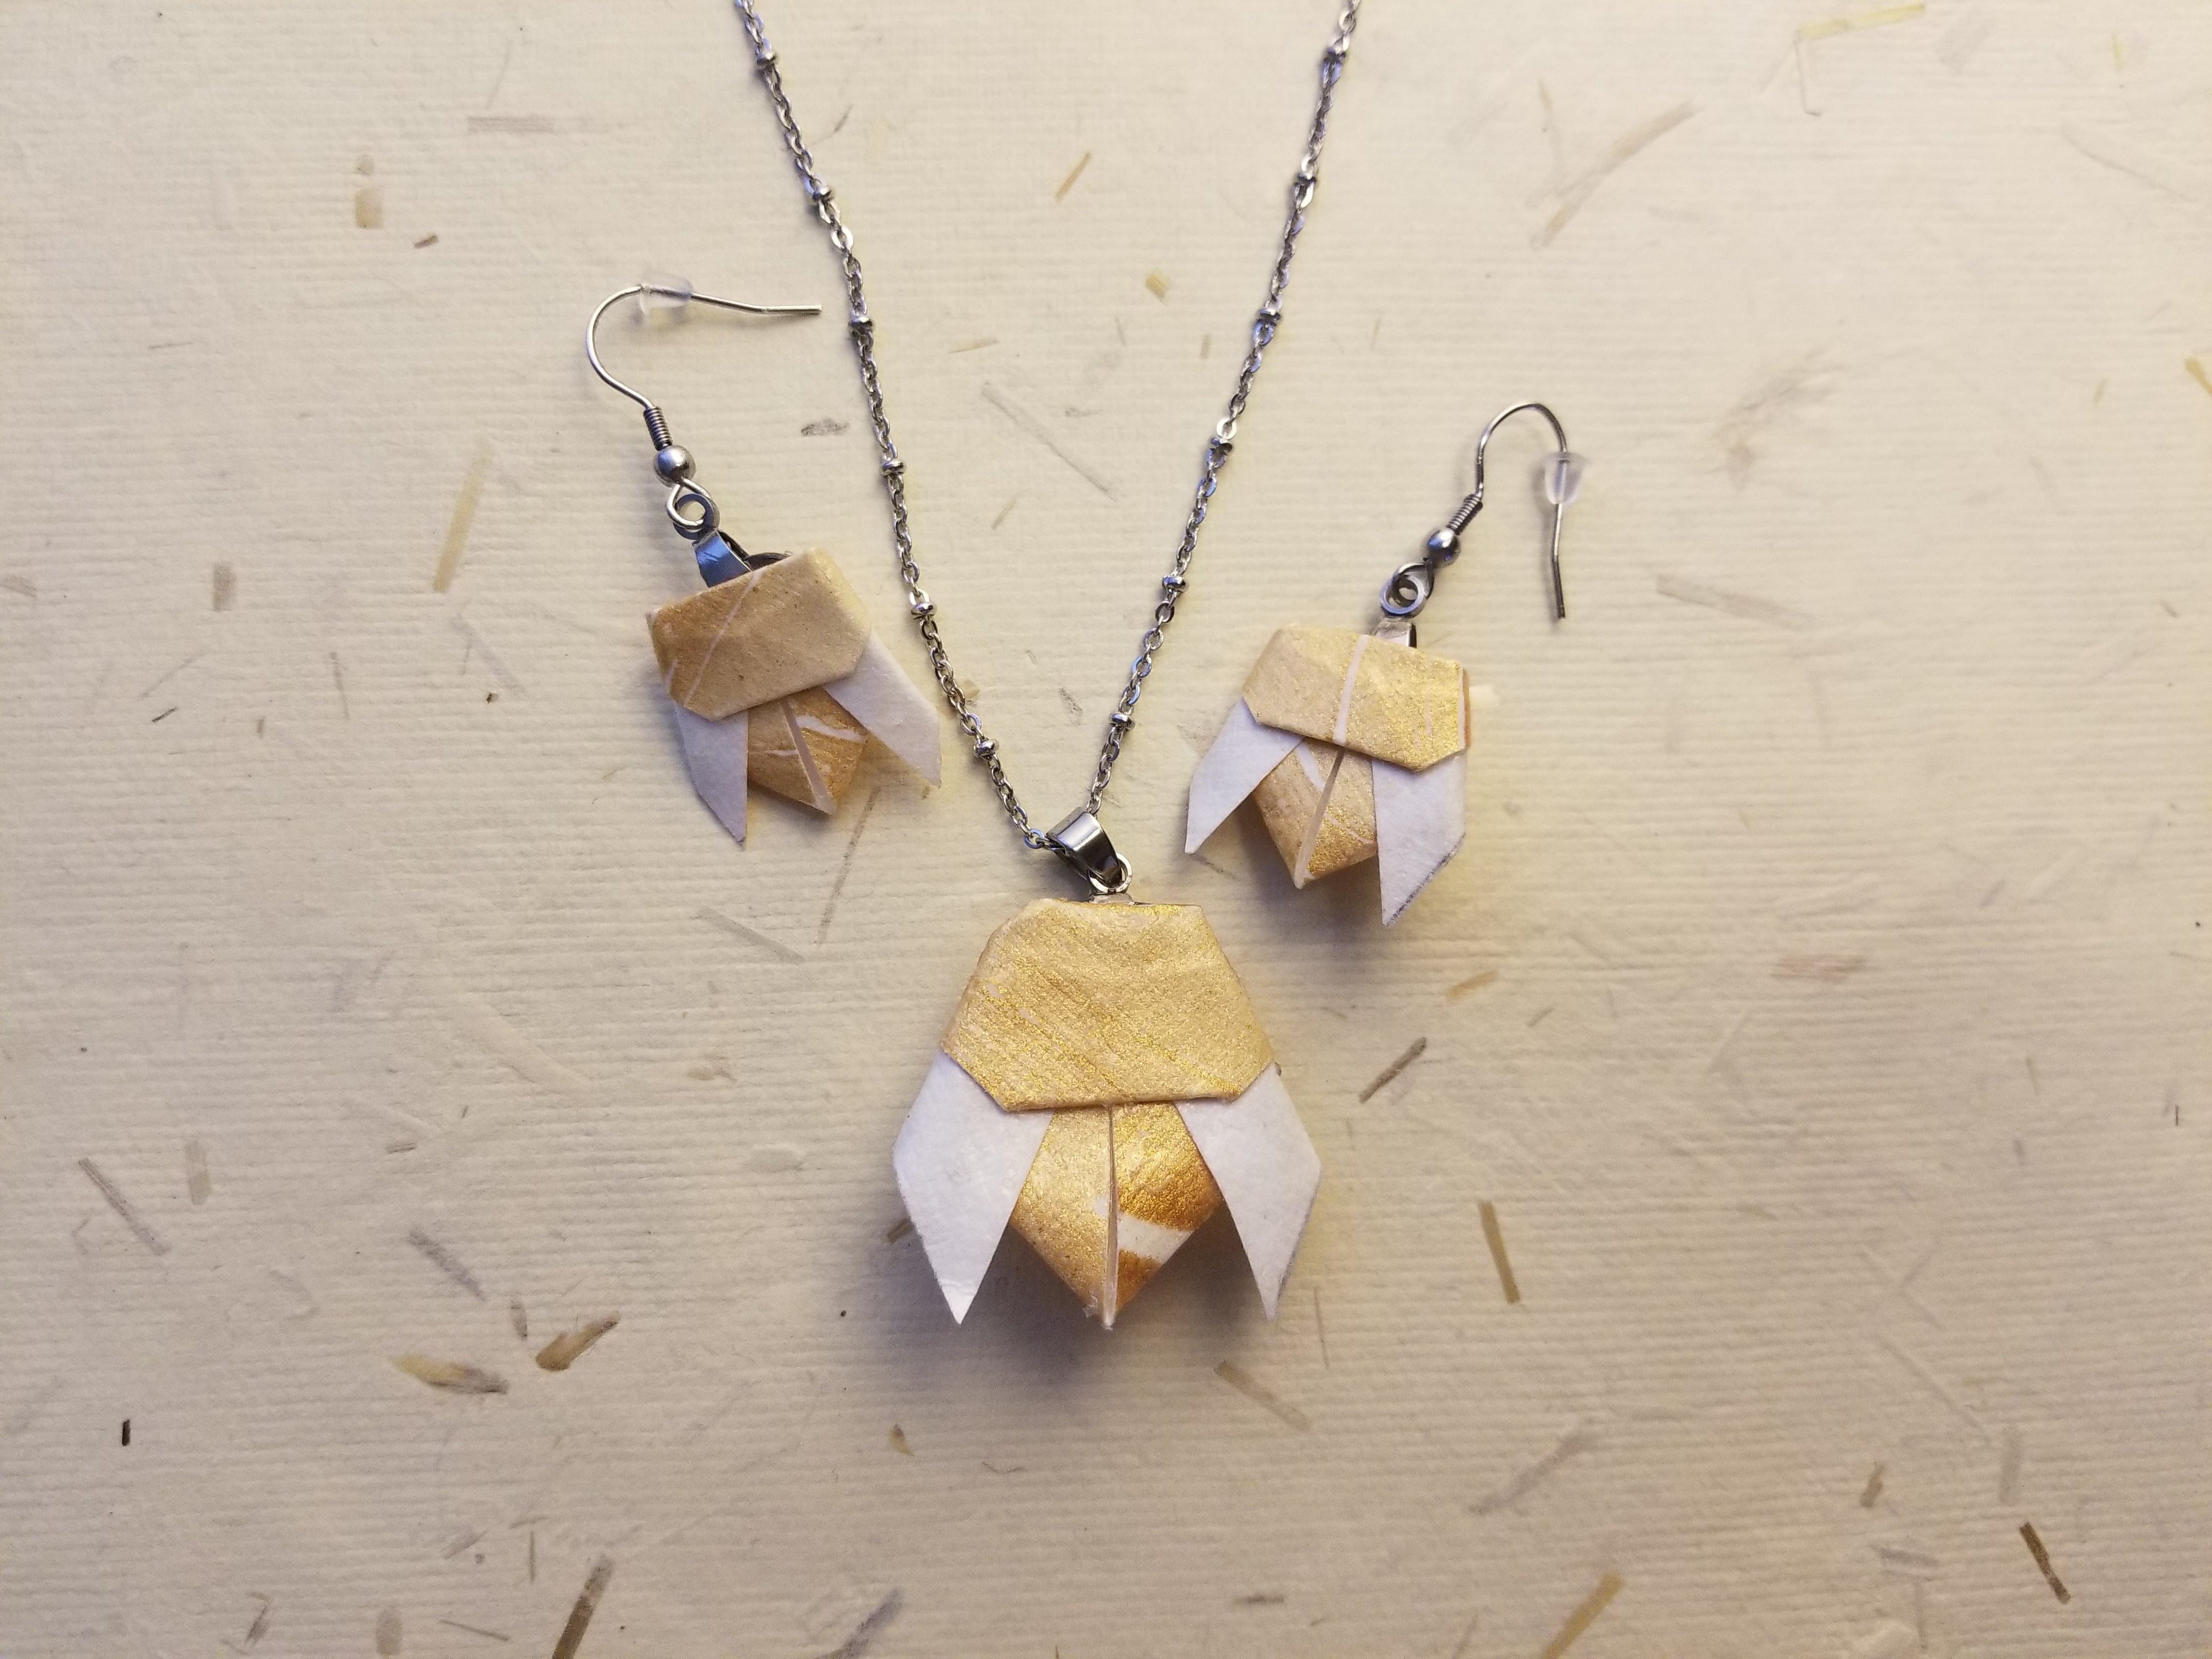 Hypo allergenic jewelry kit to make your own bee necklace and earrings.